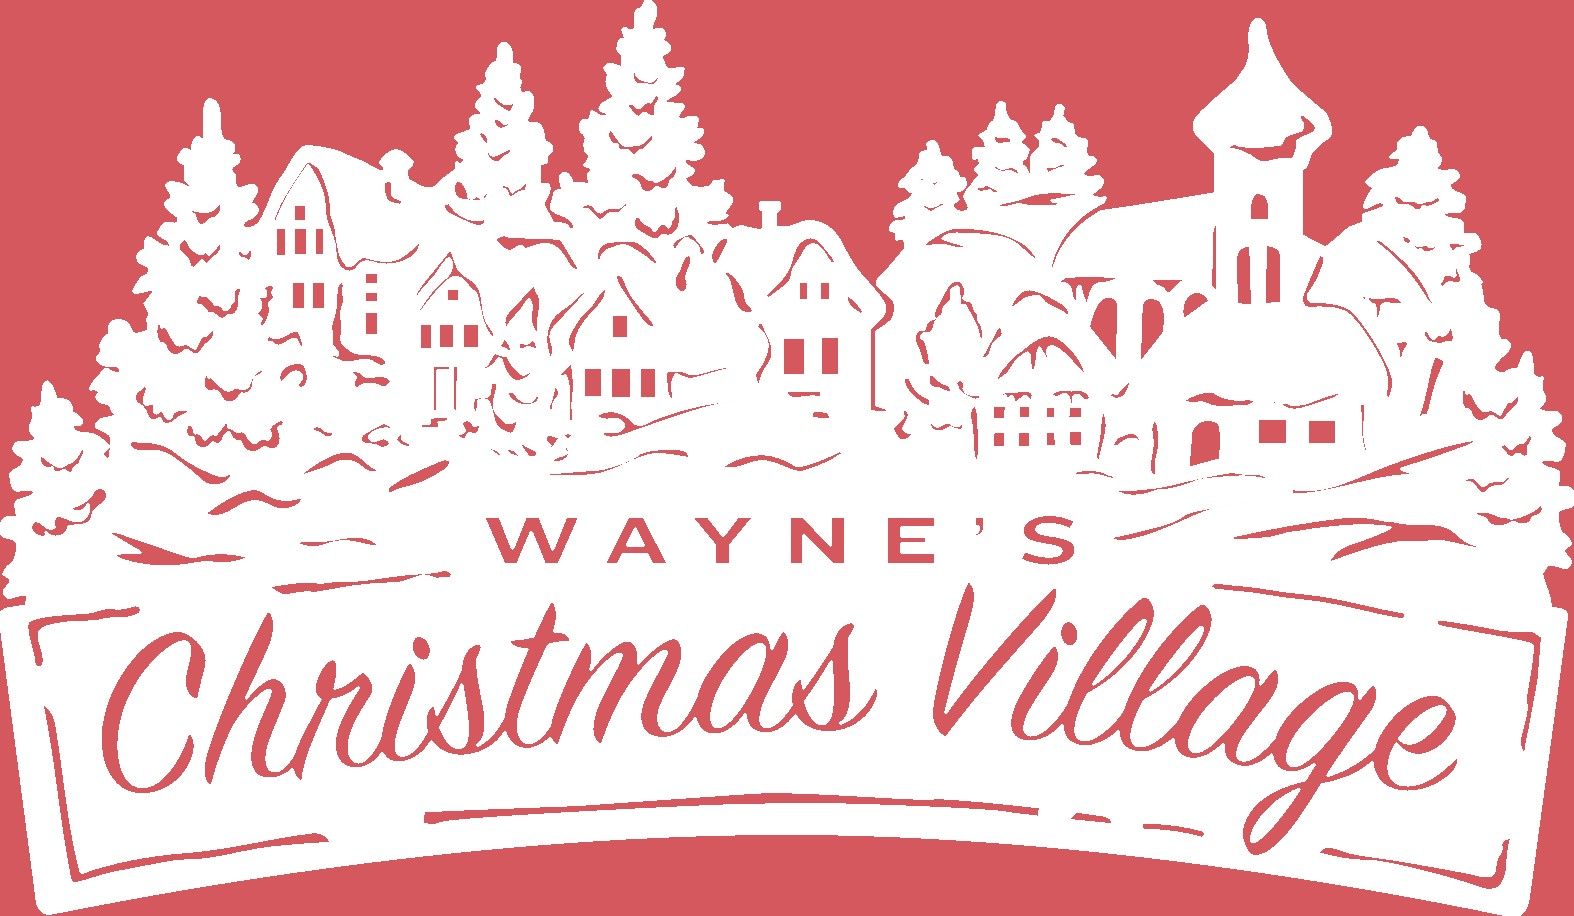 Wayne's Christmas Village